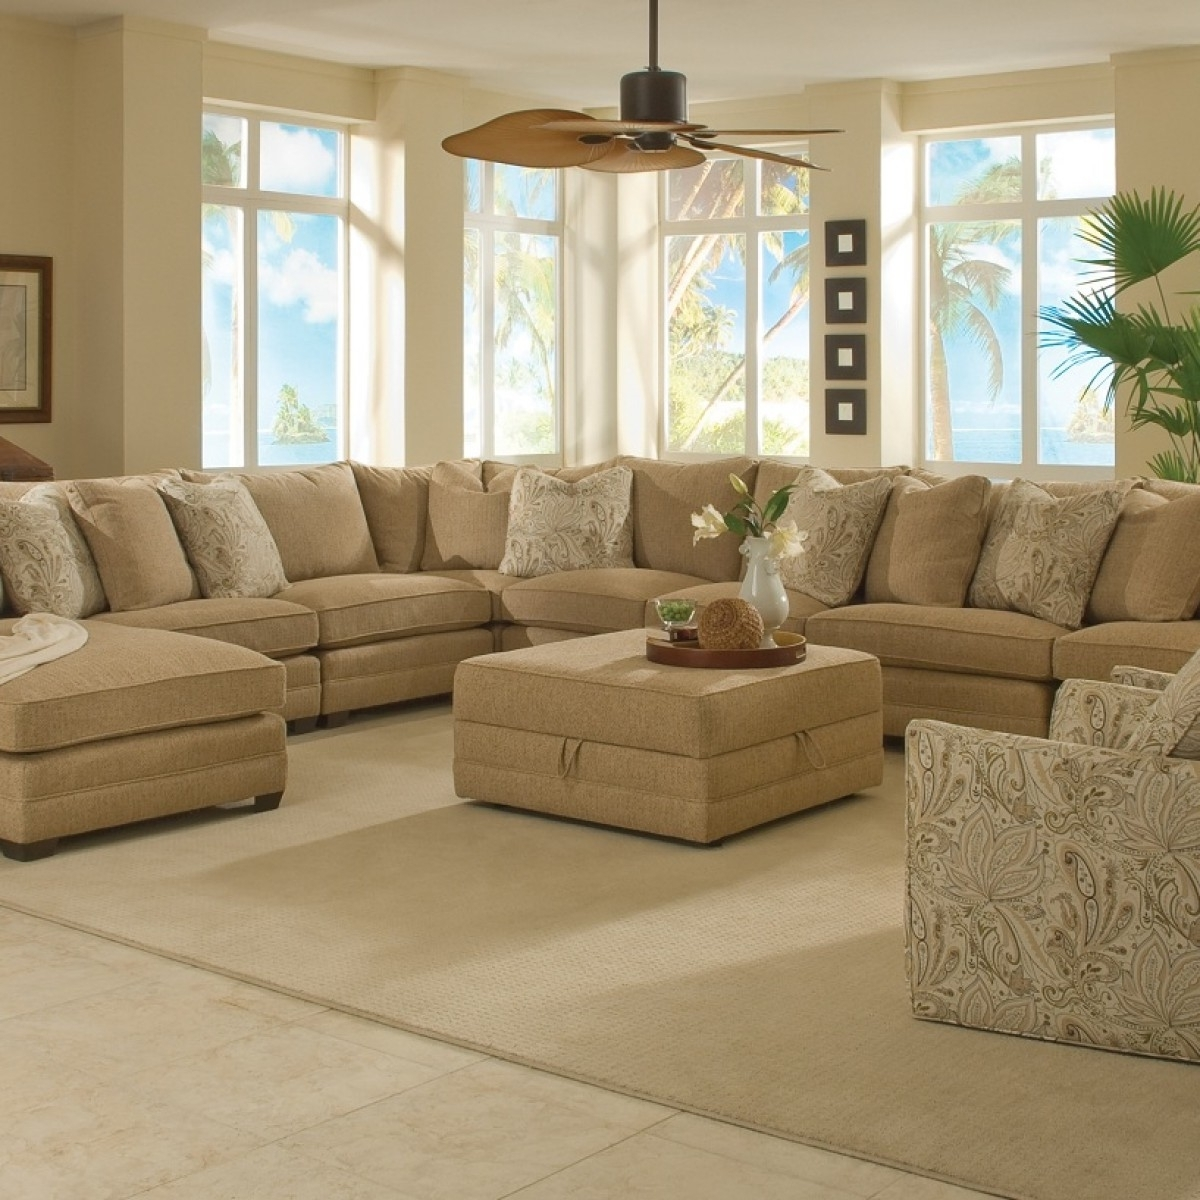 Newest Deep Cushion Sofas Regarding Factors To Consider Before Buying An Extra Large Sectional Sofa (View 13 of 20)